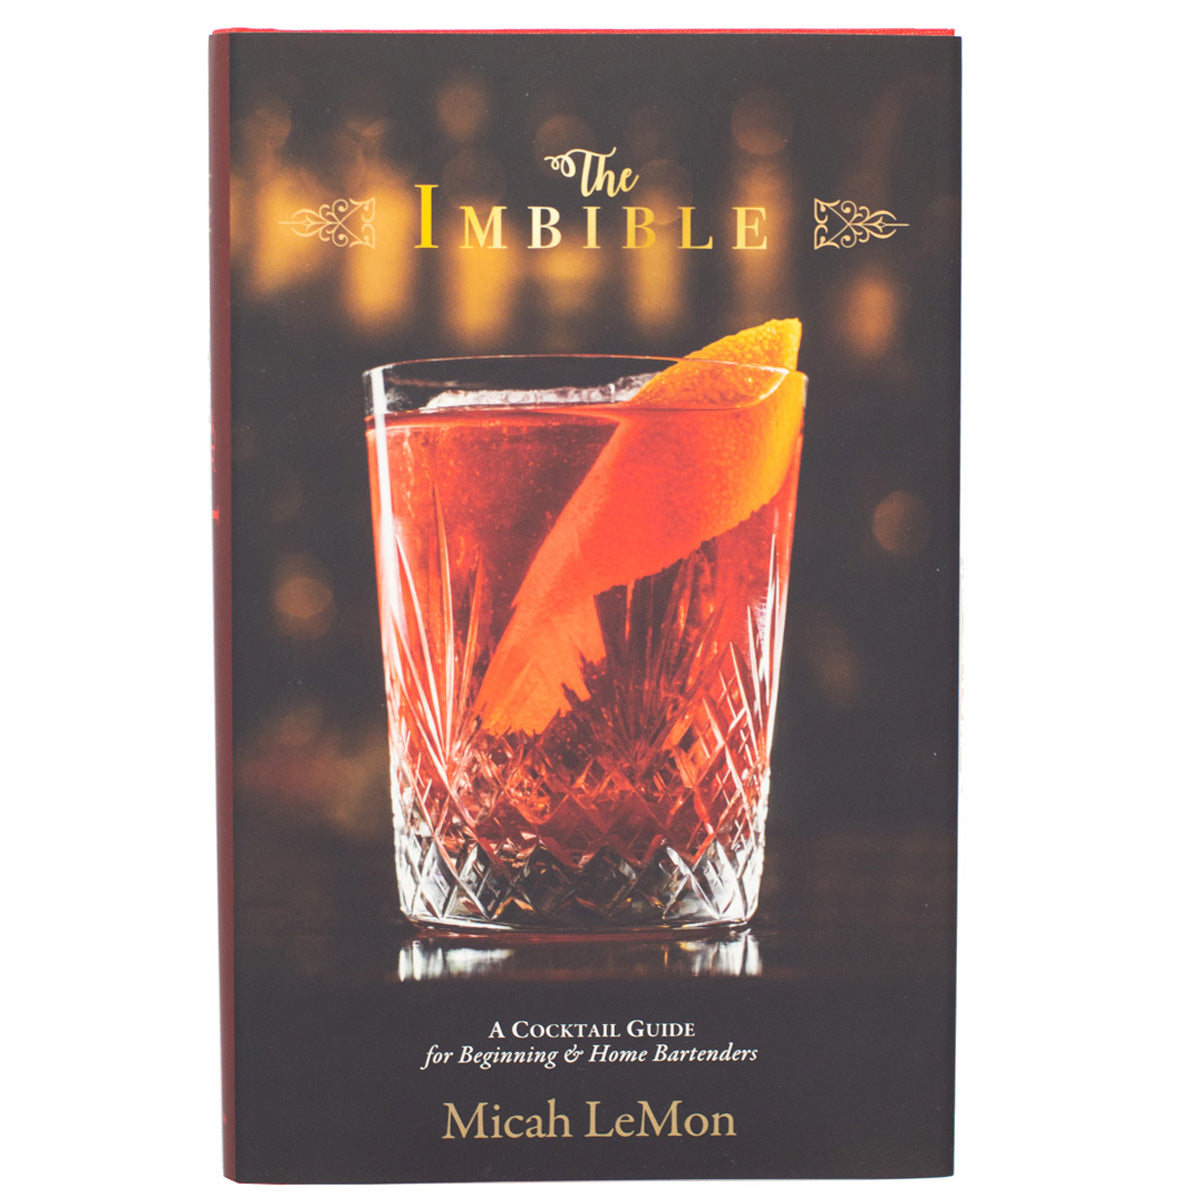 The Imbible: A Cocktail Guide (Signed)